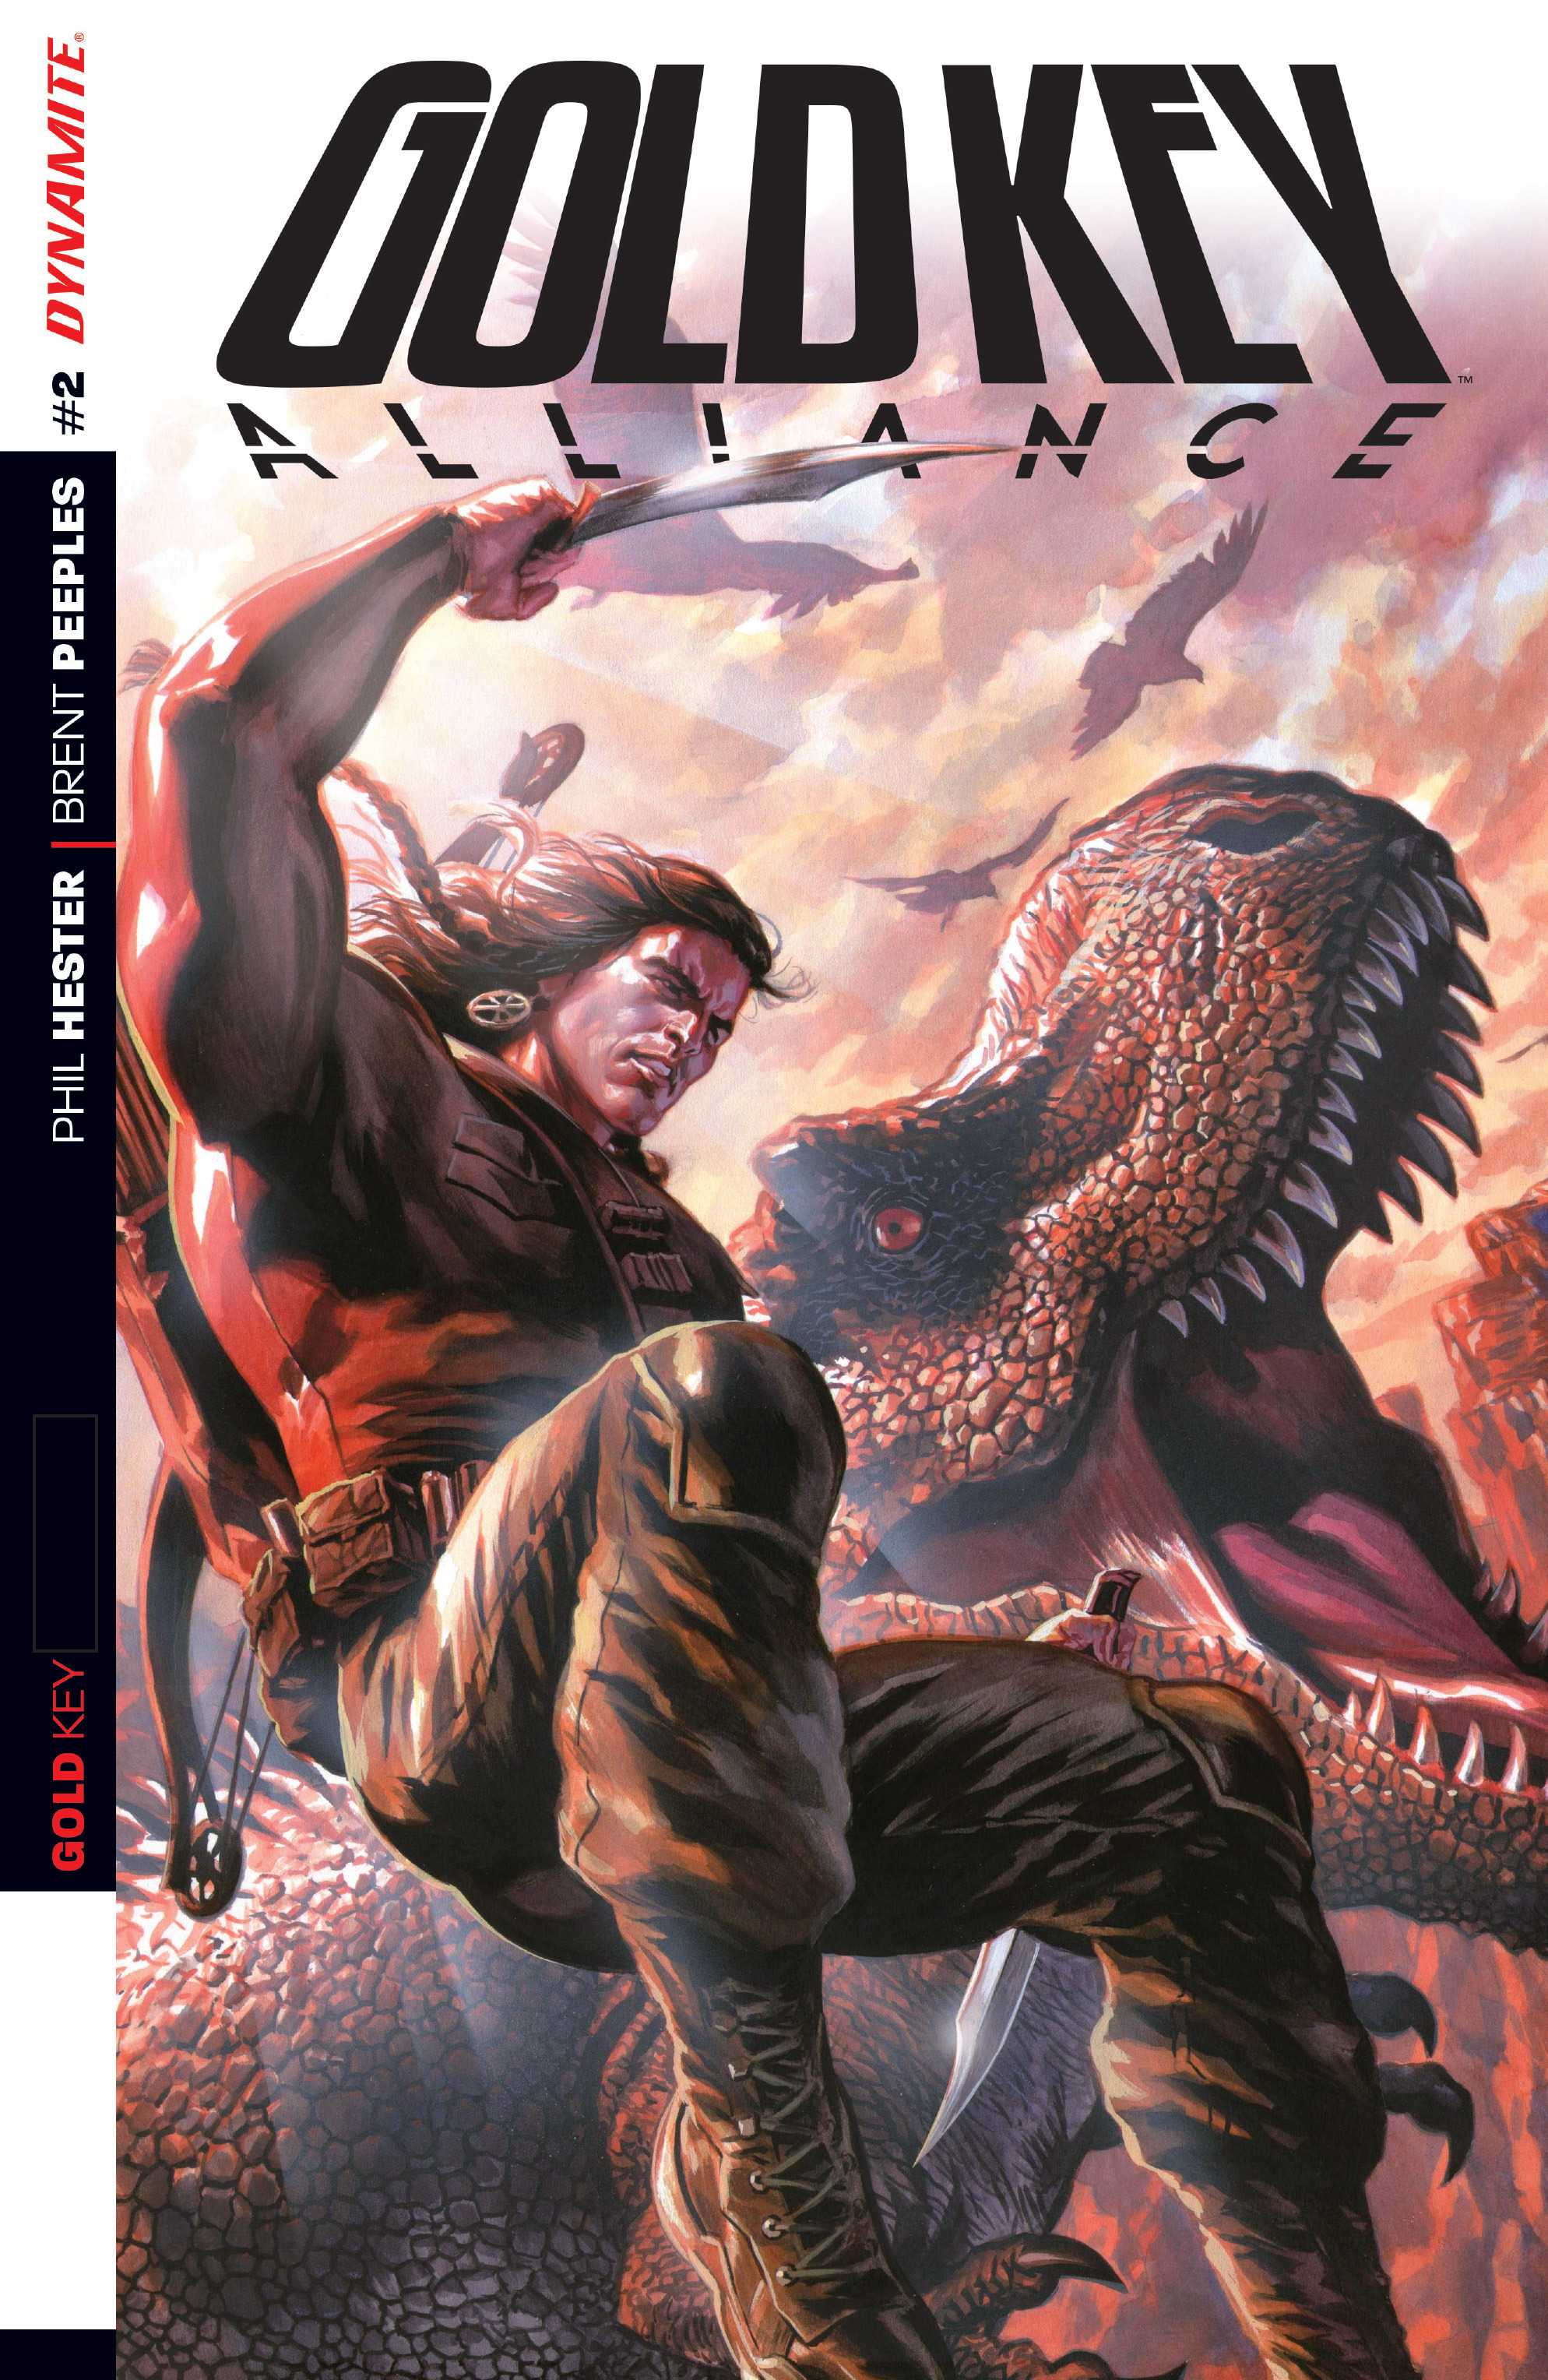 Read online Gold Key: Alliance comic -  Issue #2 - 1